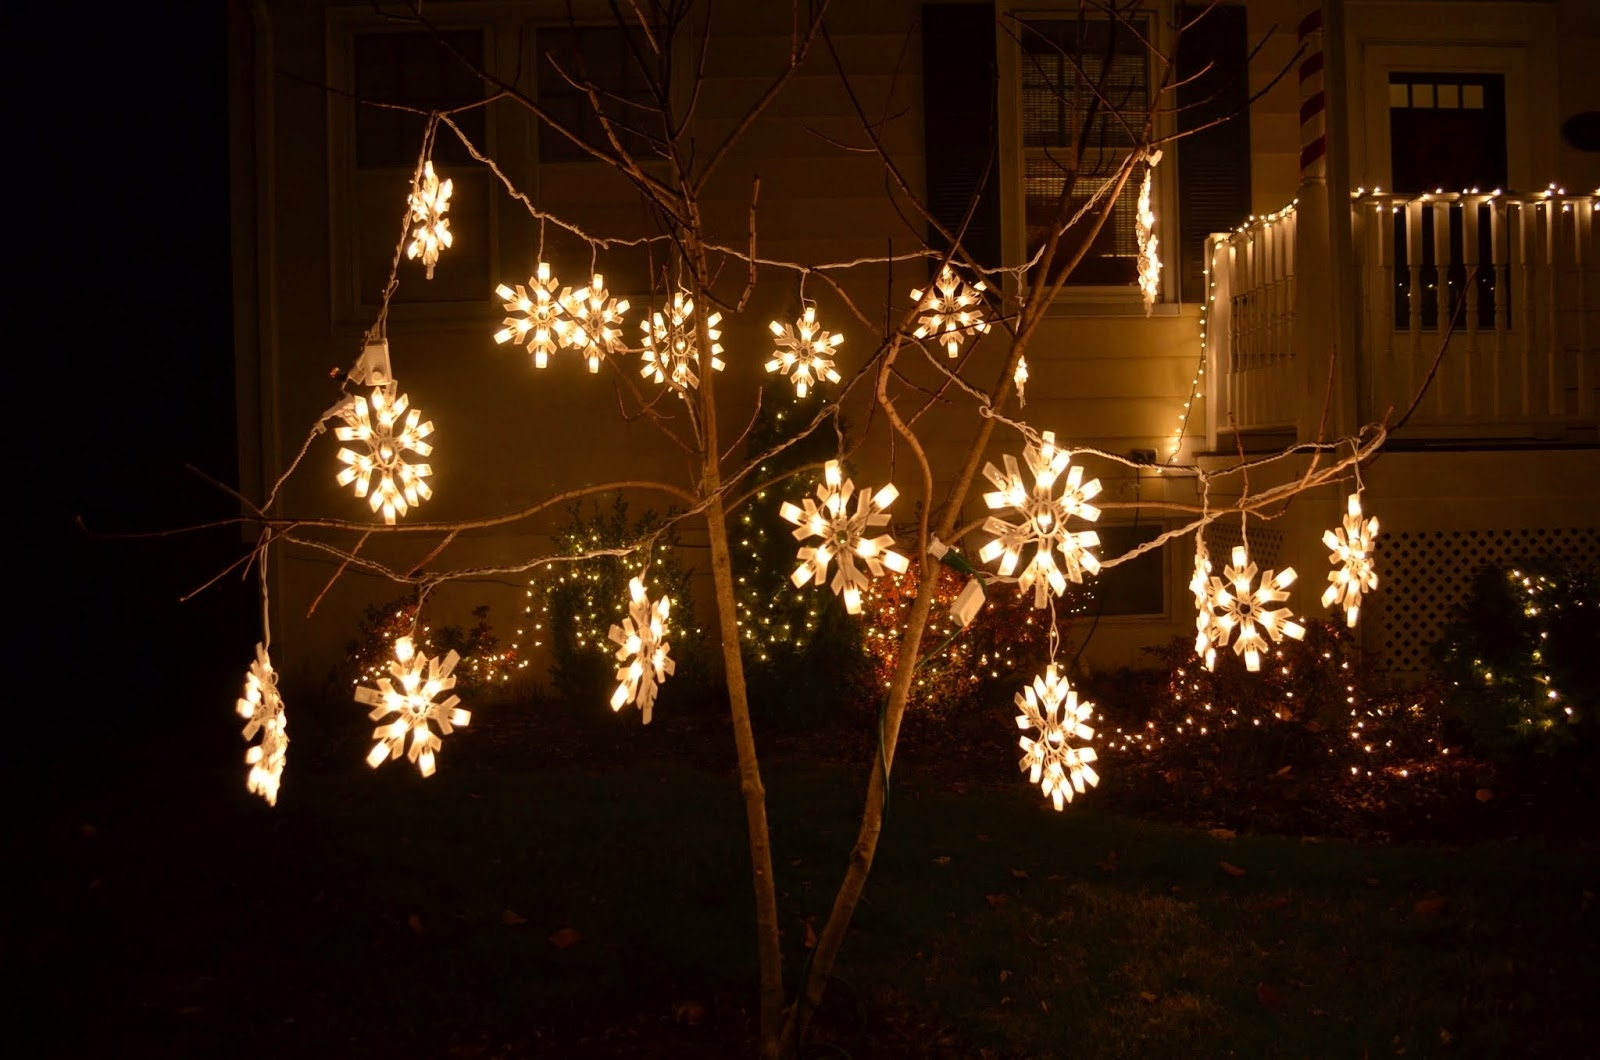 Outdoor Hanging Snowflake Lights Throughout Best And Newest In The Little Yellow House: Outdoor Christmas Lights At Night (View 17 of 20)